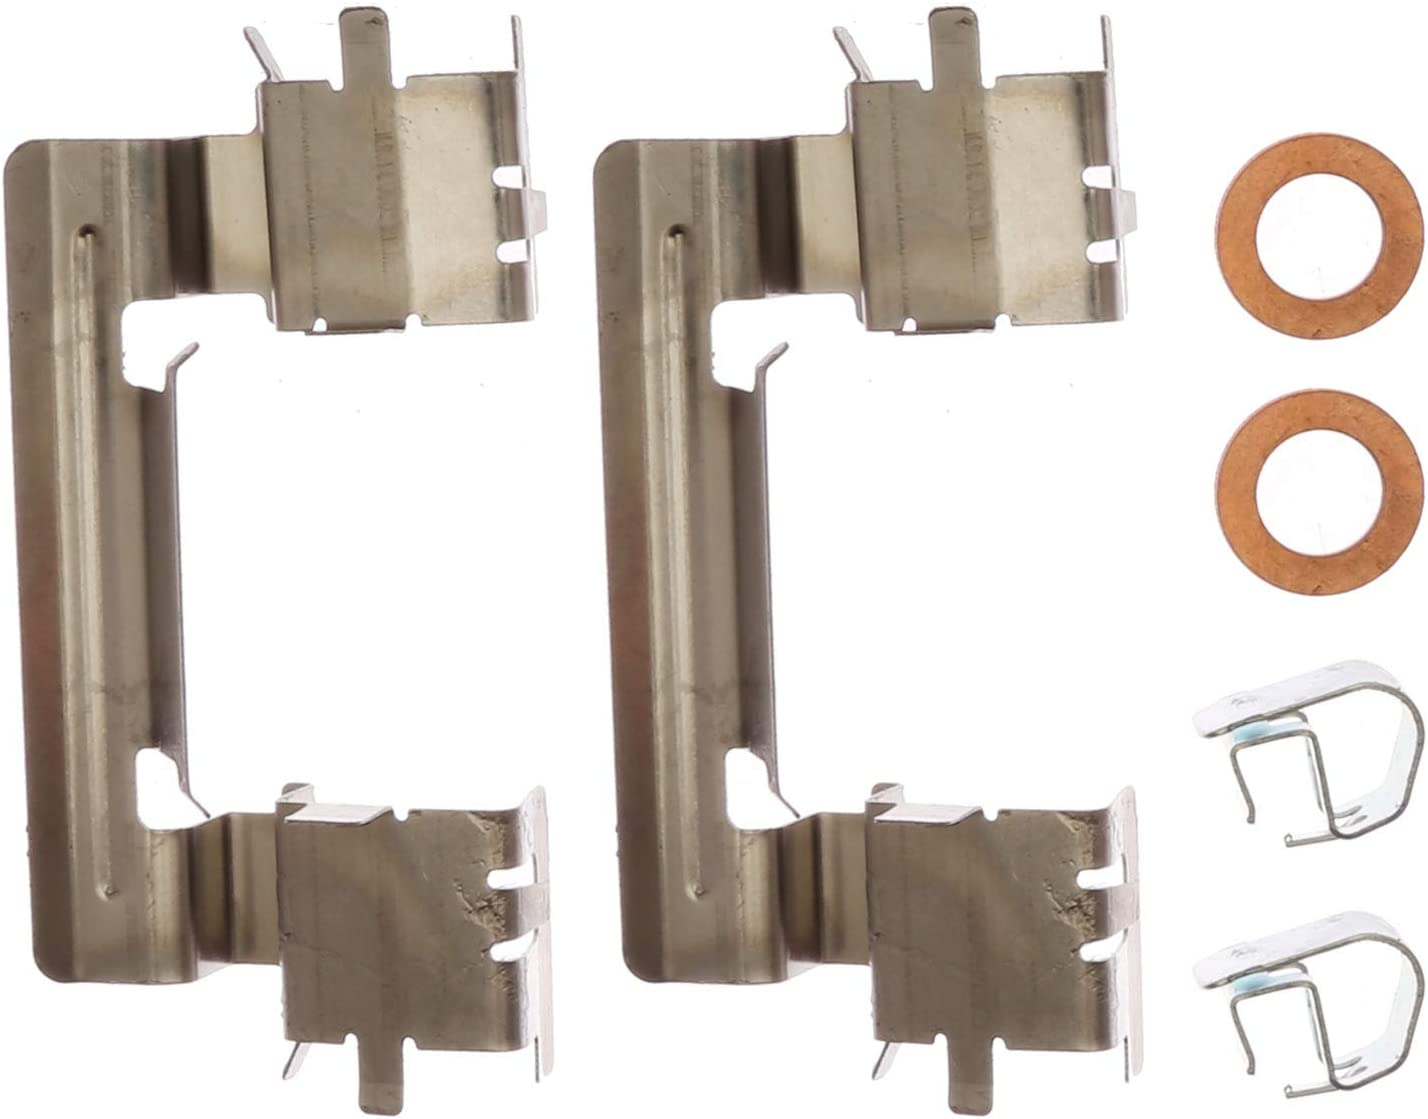 StopTech 925.40041 Select Sport Axle Pack